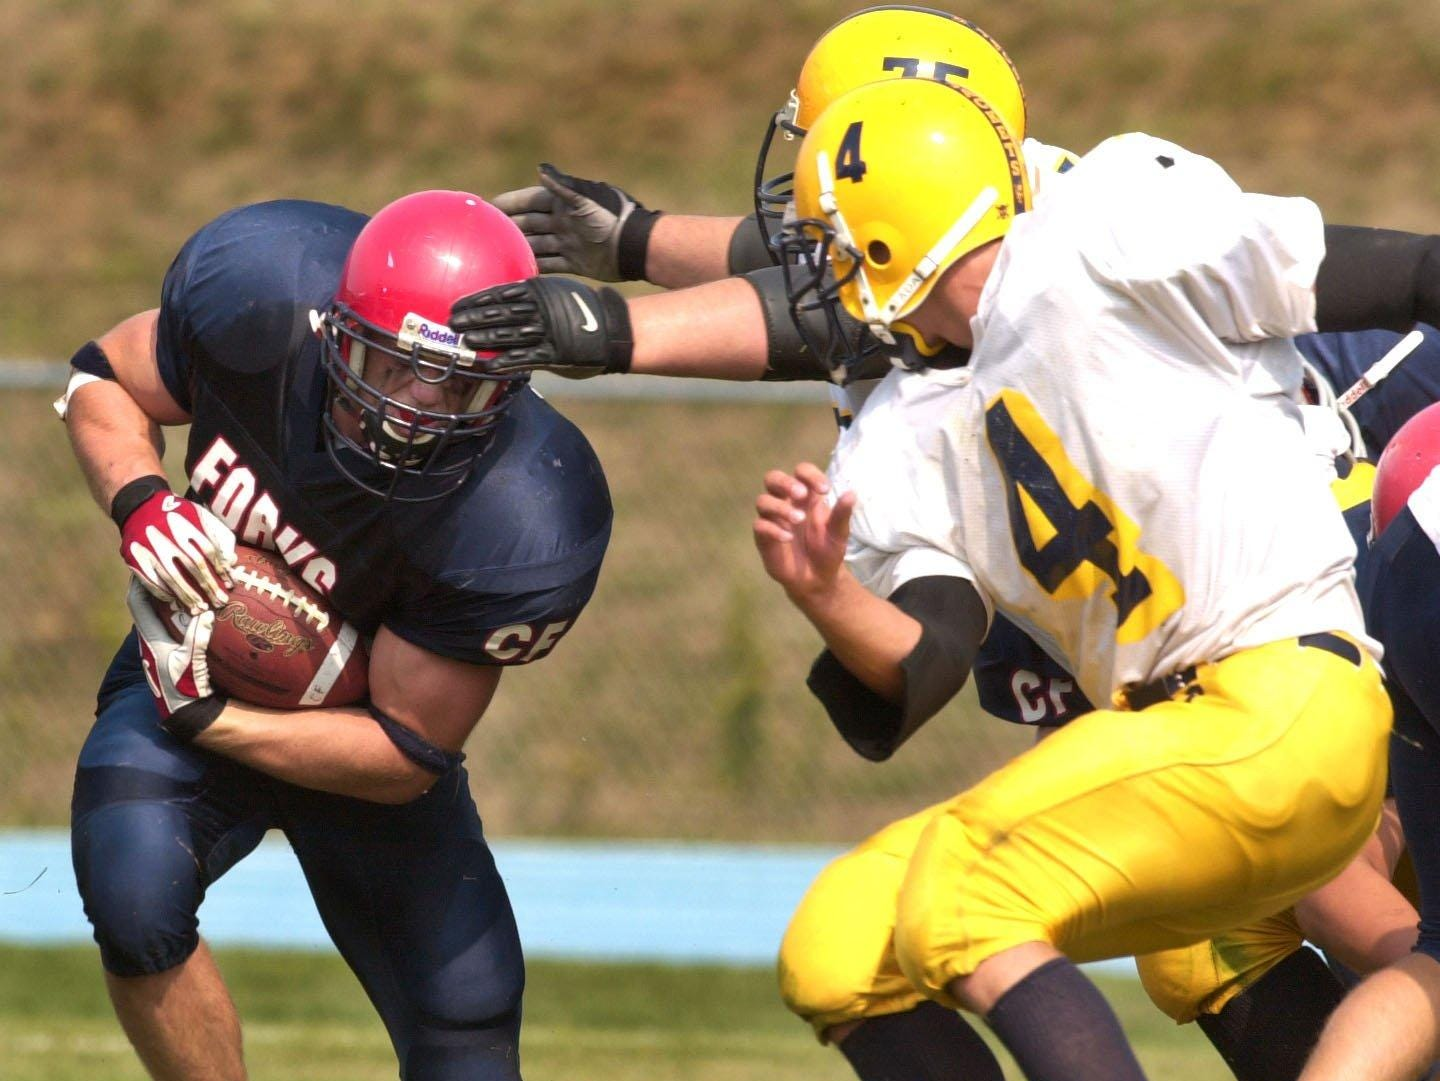 From 2001: Chenango Forks' Kelsey Jenks gets ready to collide with Oneonta's James Hurtubise, 4, and Tony Dilello, 75, (in back) in the second quarter at Chenango Forks.